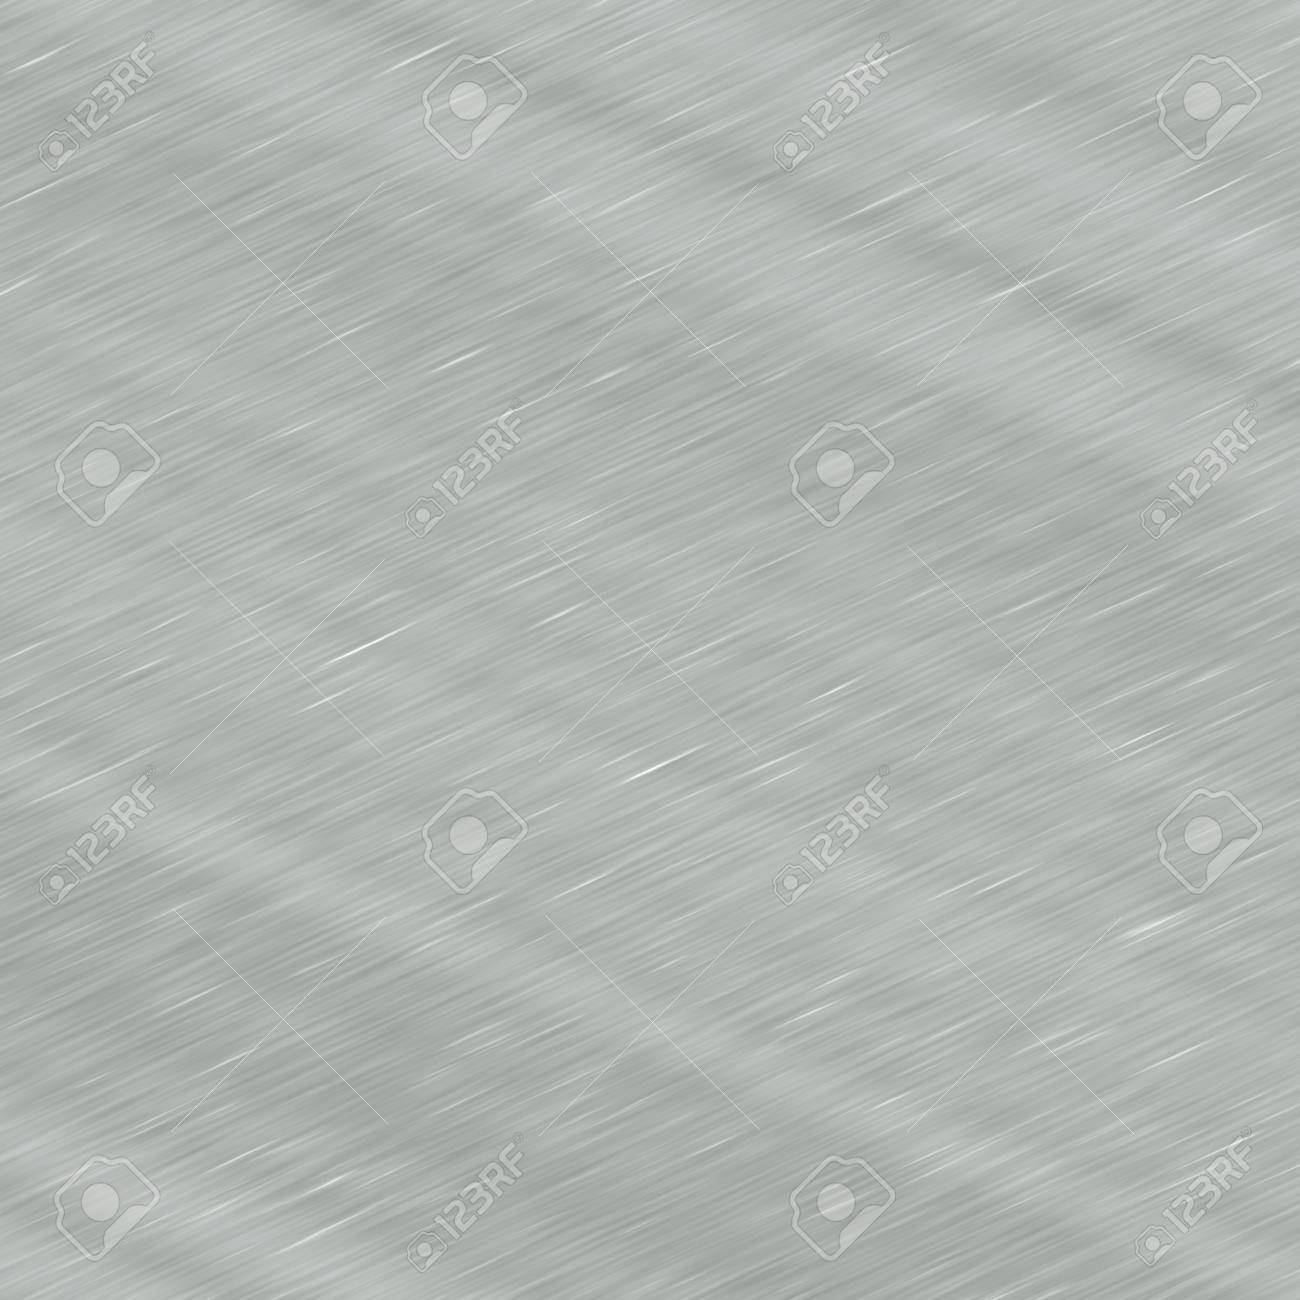 Brushed metal surface texture seamless background illustration Stock Photo - 3445859